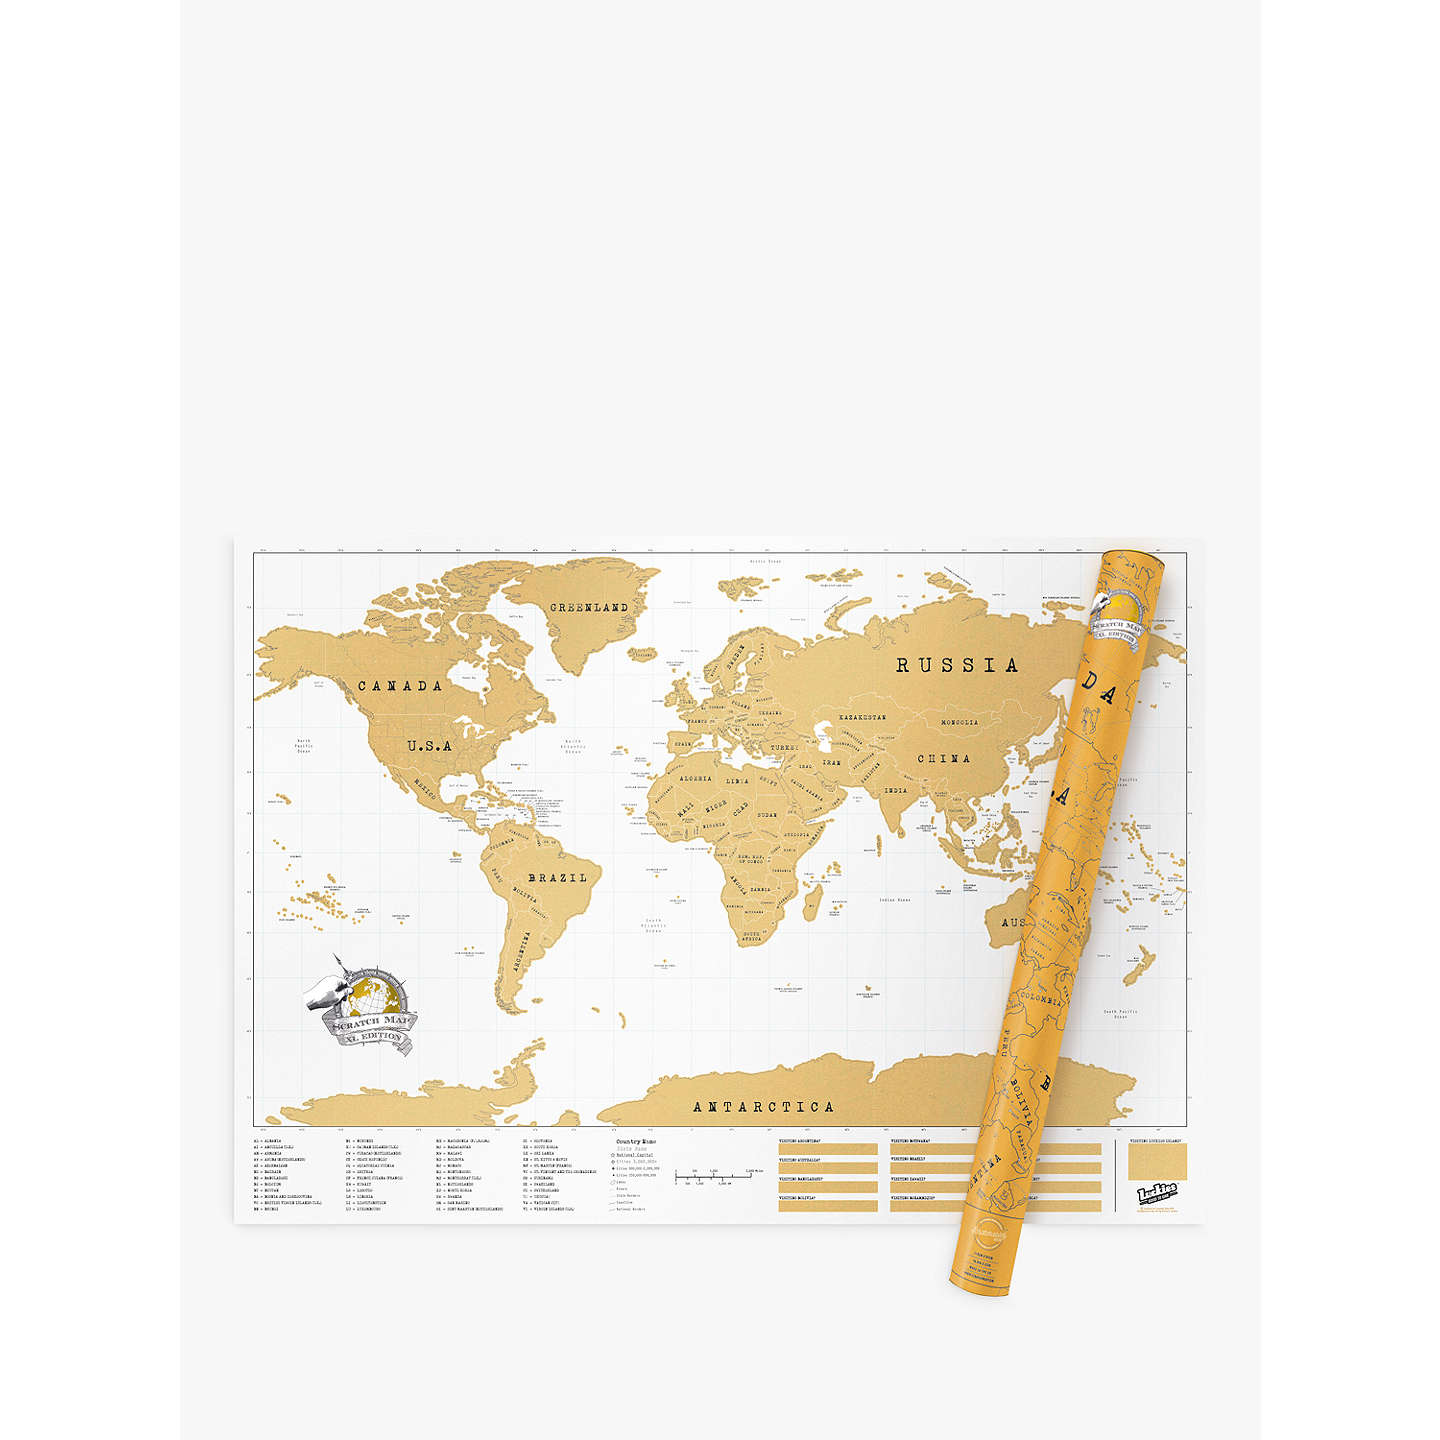 Luckies scratch map xl edition at john lewis buyluckies scratch map xl edition online at johnlewis gumiabroncs Image collections